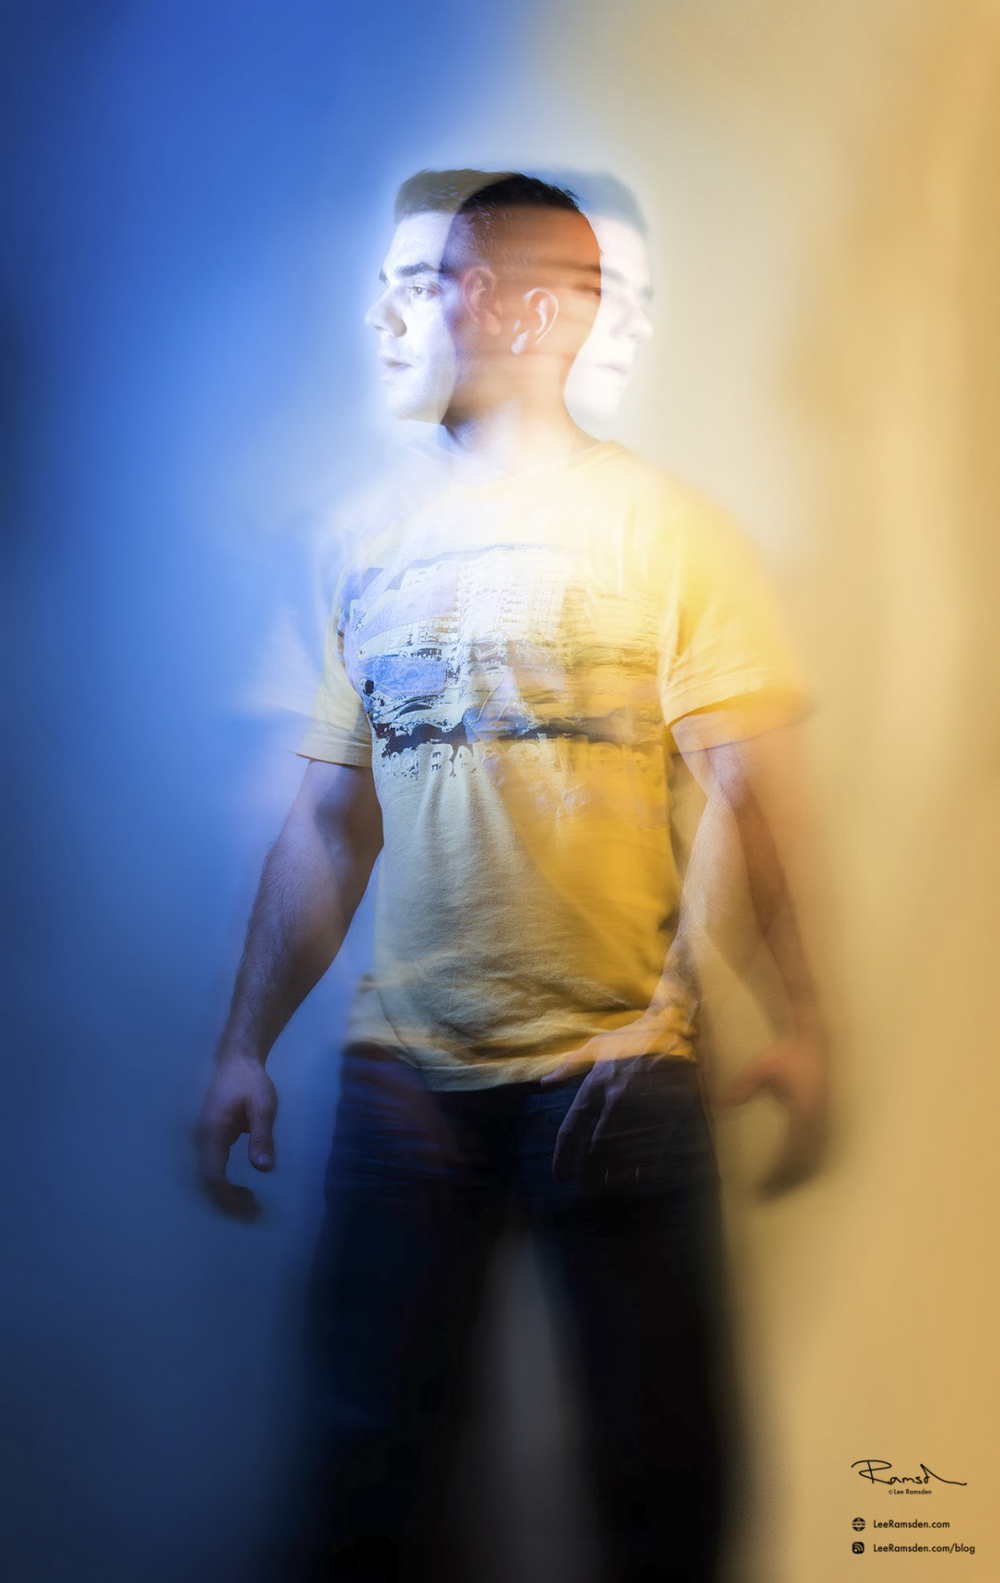 Double light exposure play time painting with light Lee Ramsden